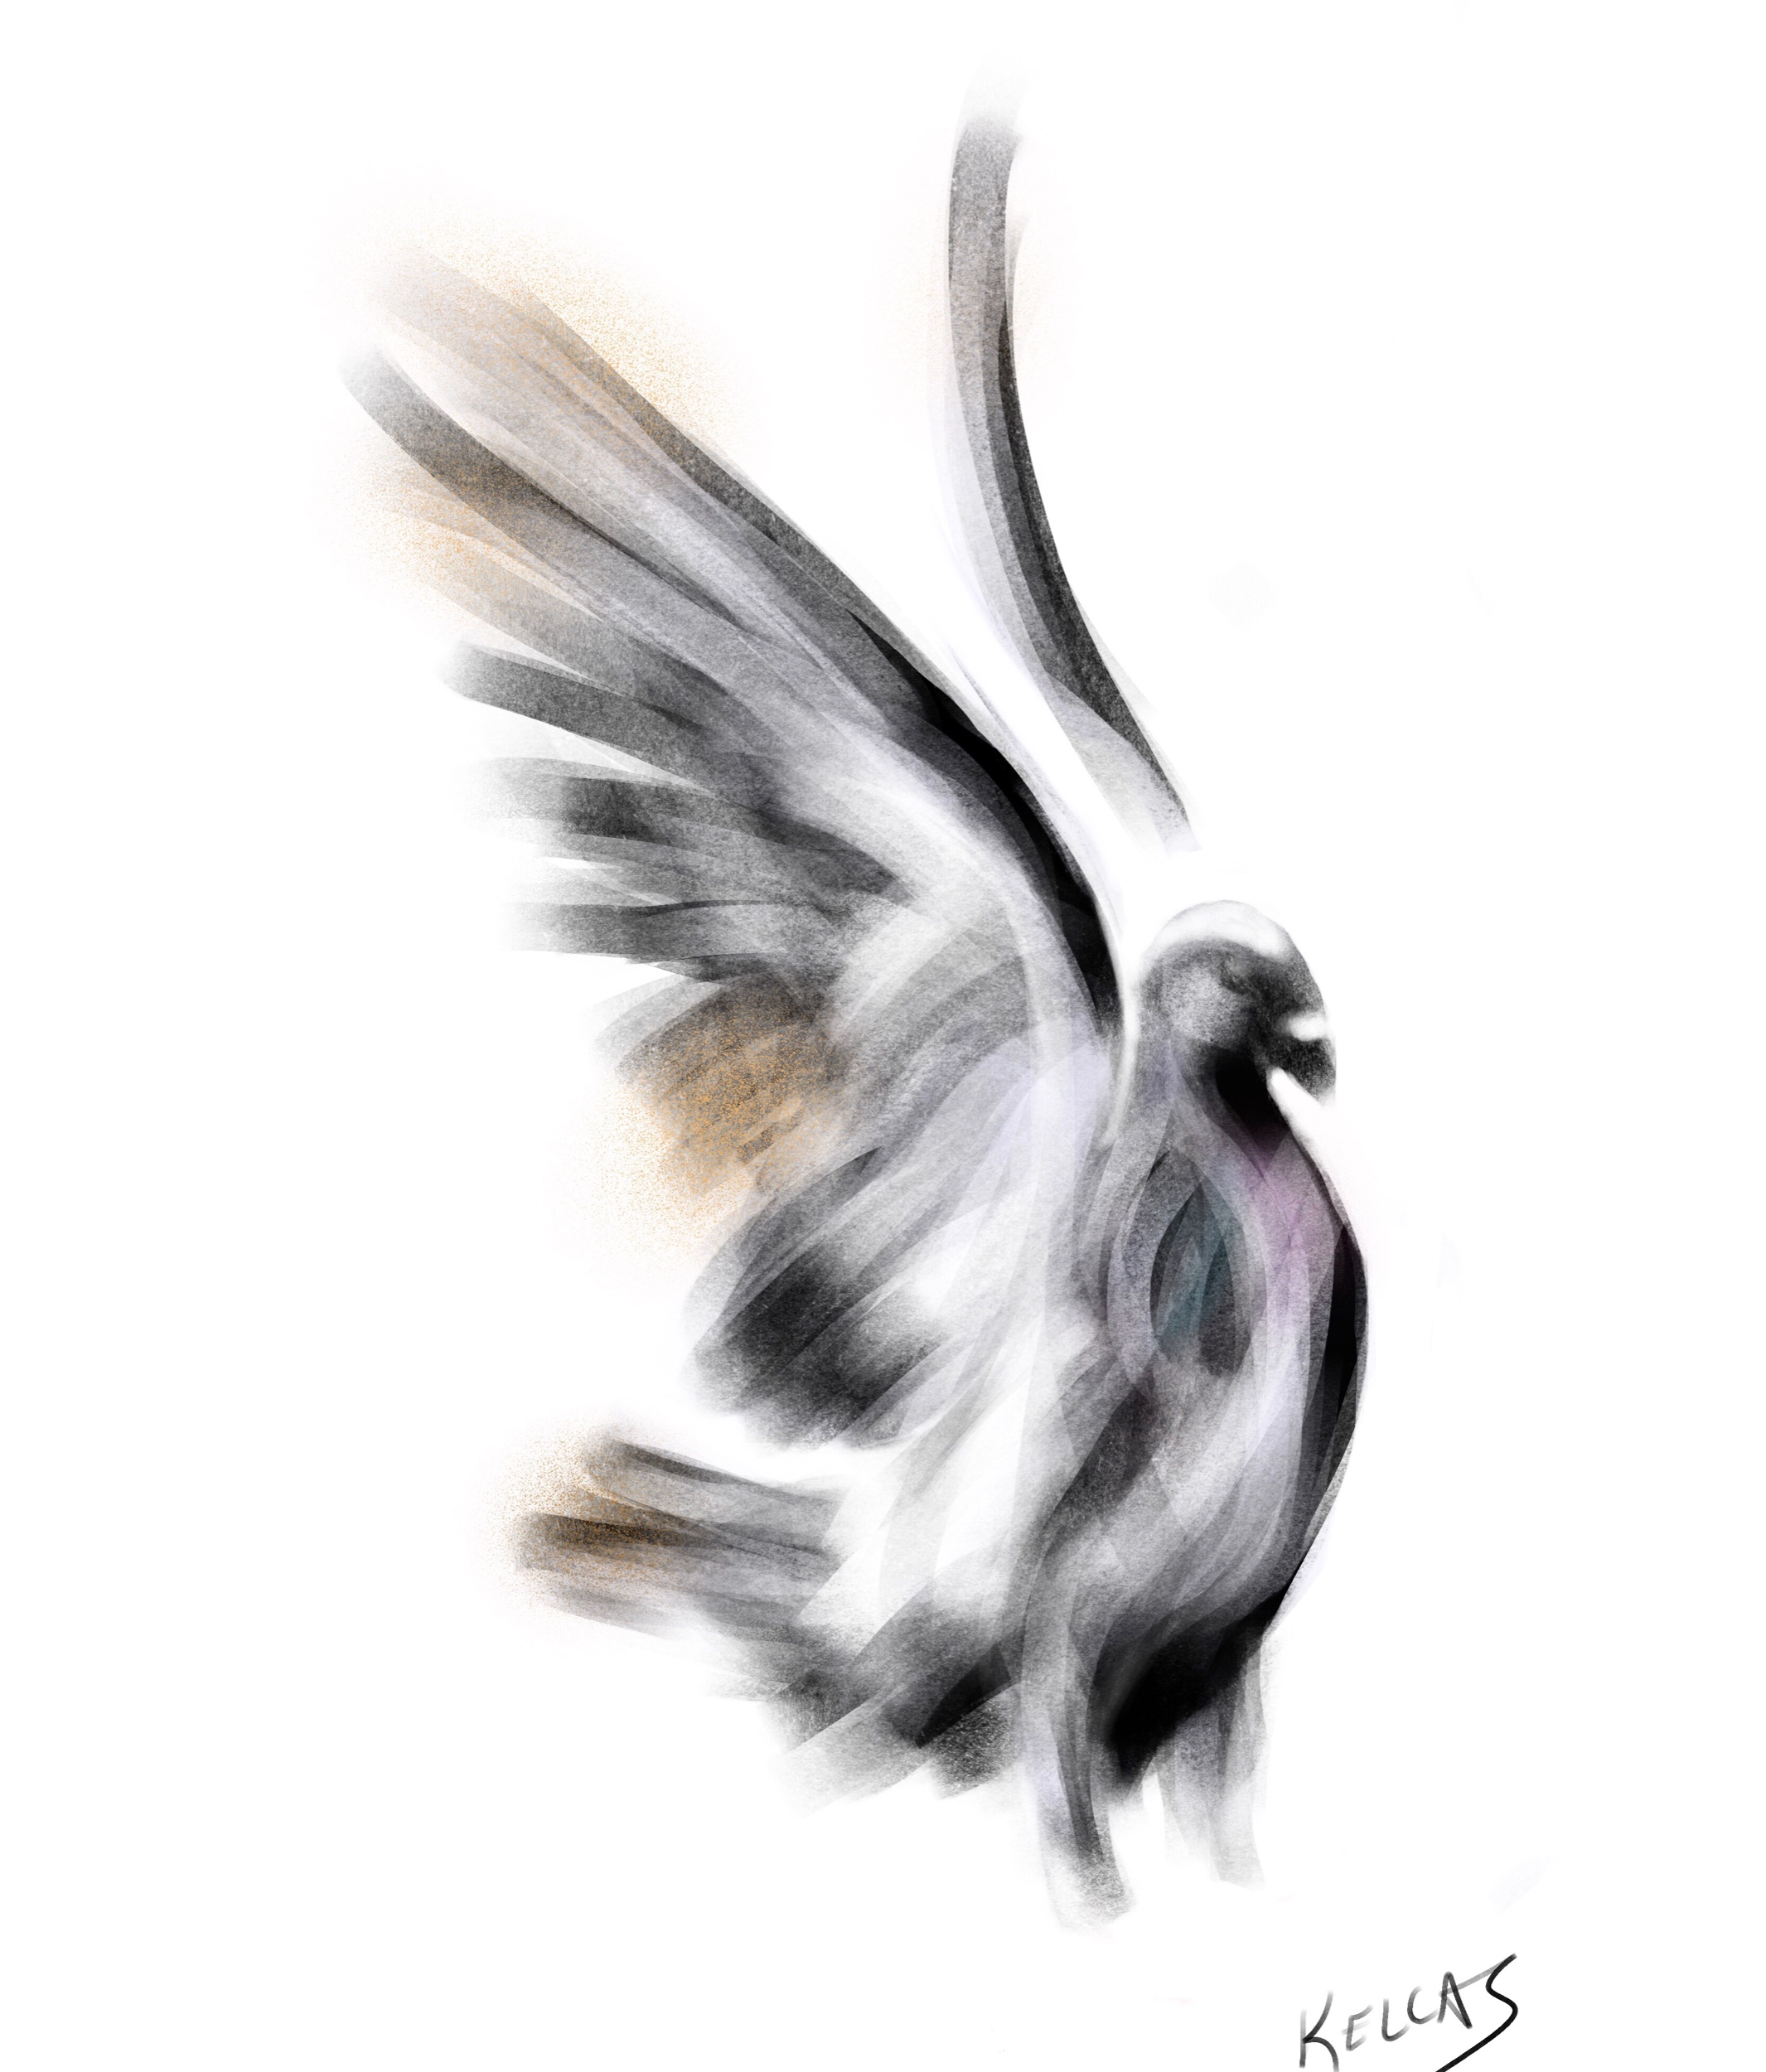 I was trying out new brushes on an iPad drawing app and it turned into a pigeon.